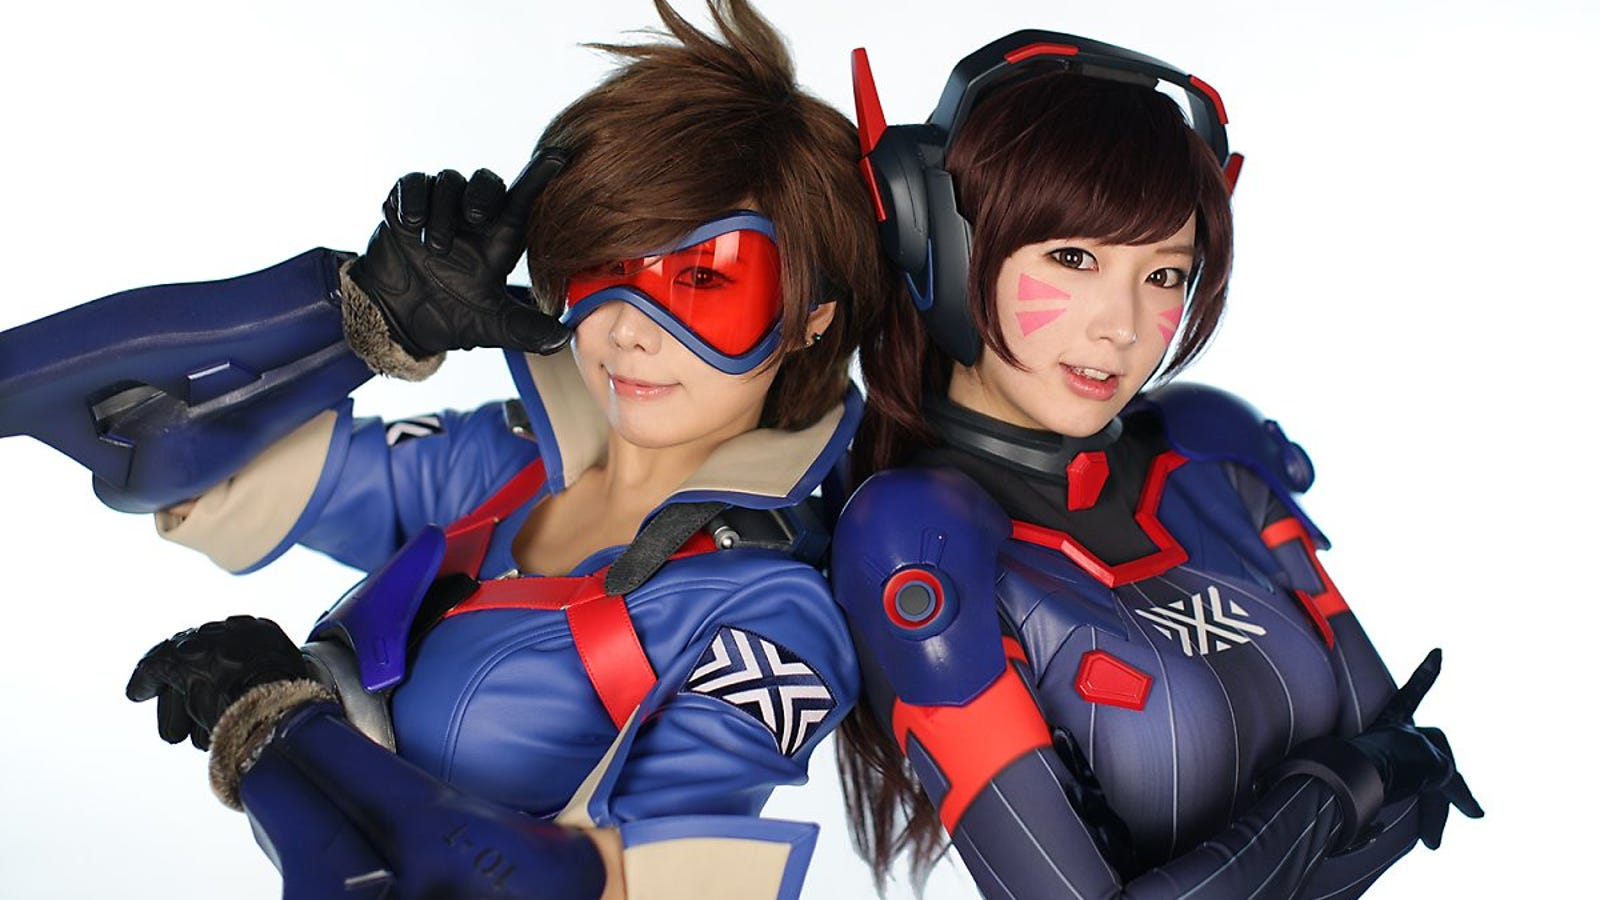 Overwatch Cosplay With An Esports Spin